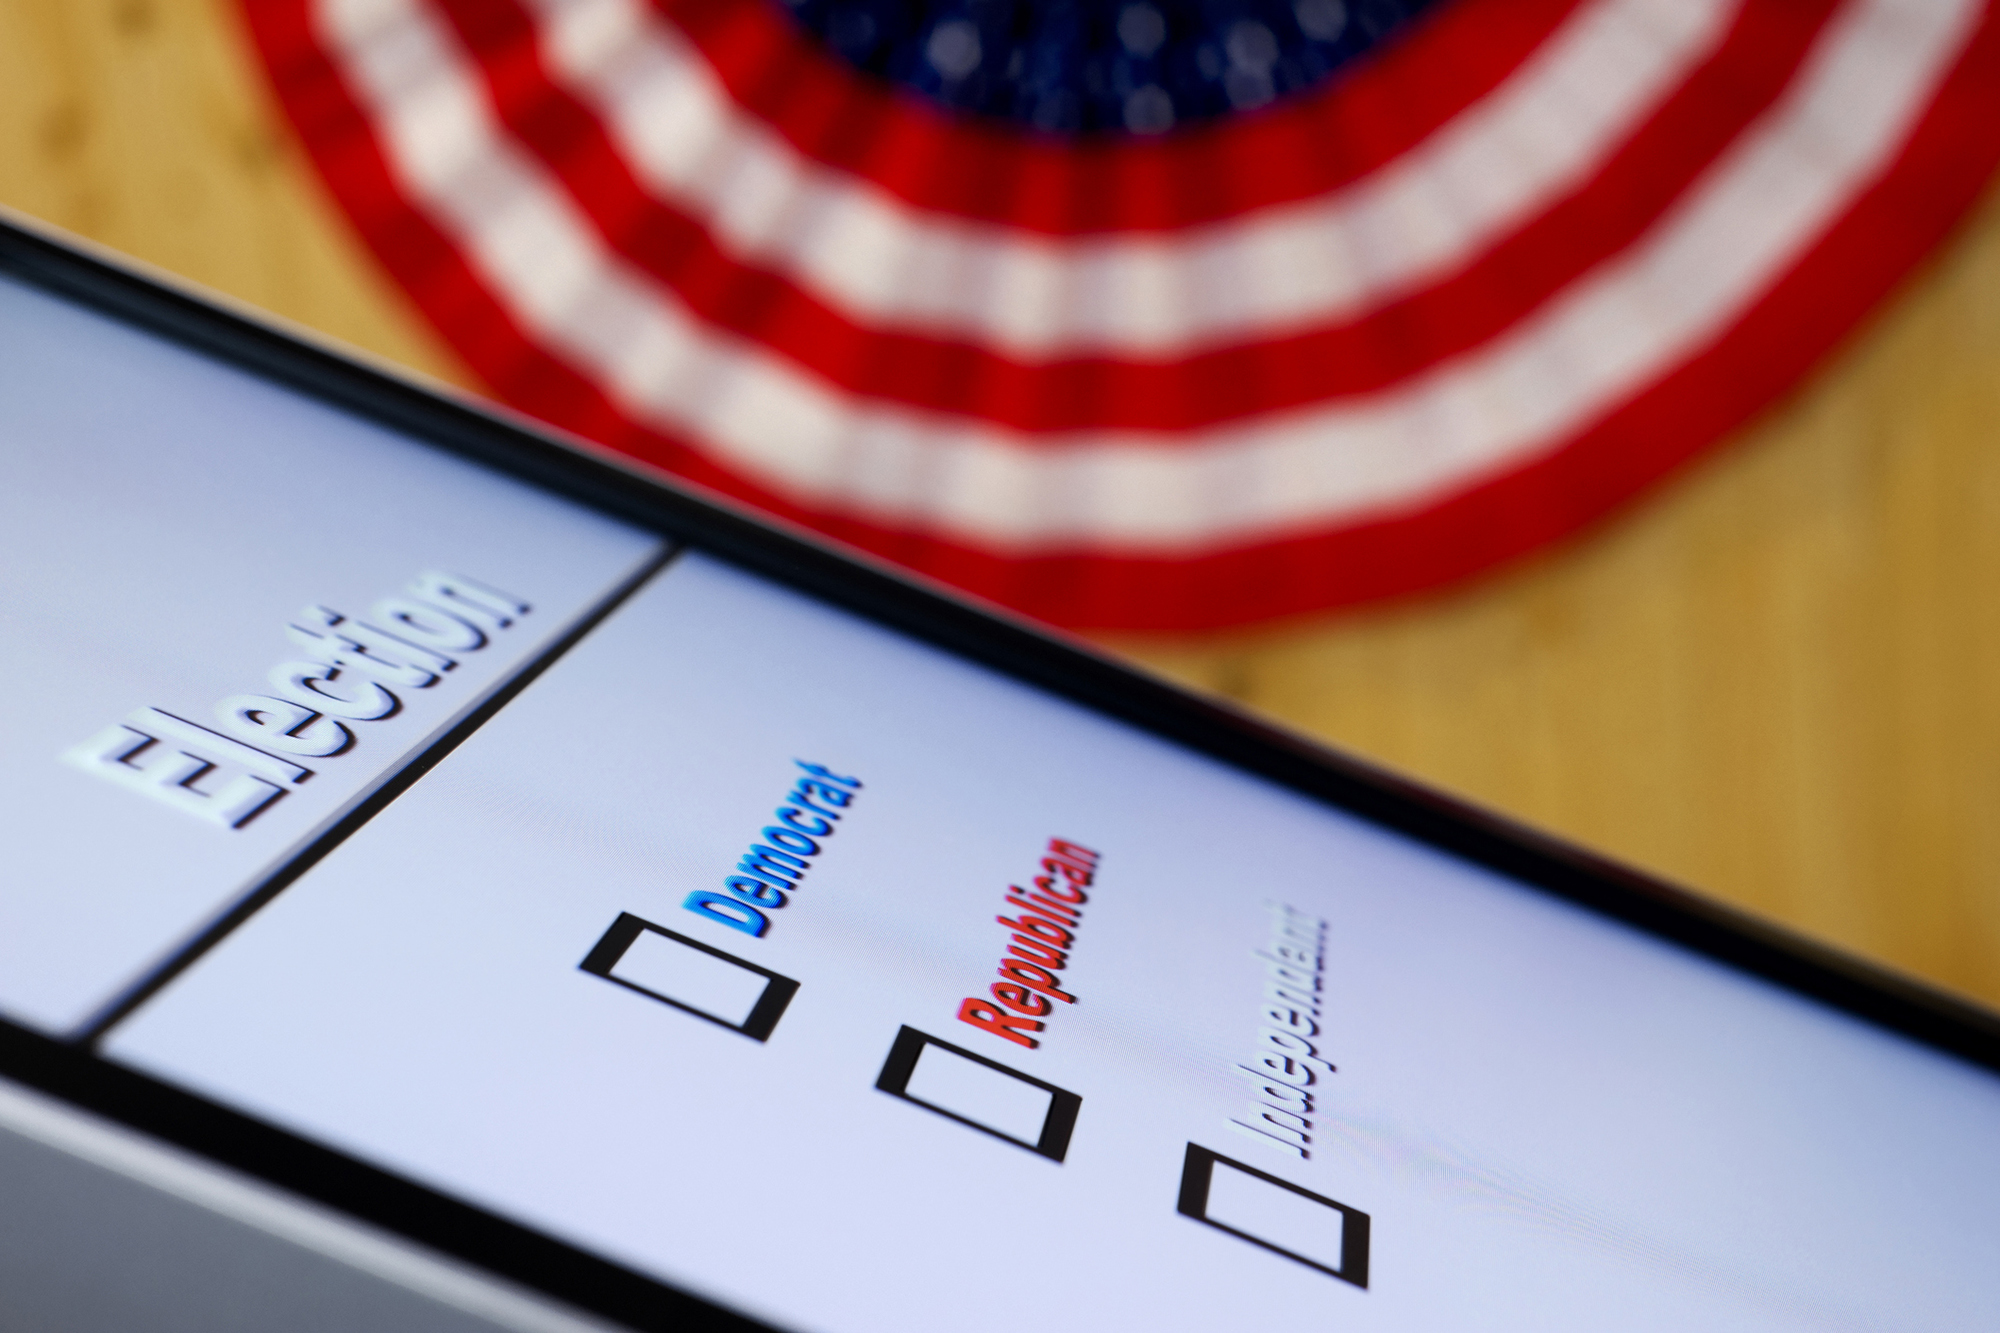 Electronic Voting. (cmannphoto/Getty Images)